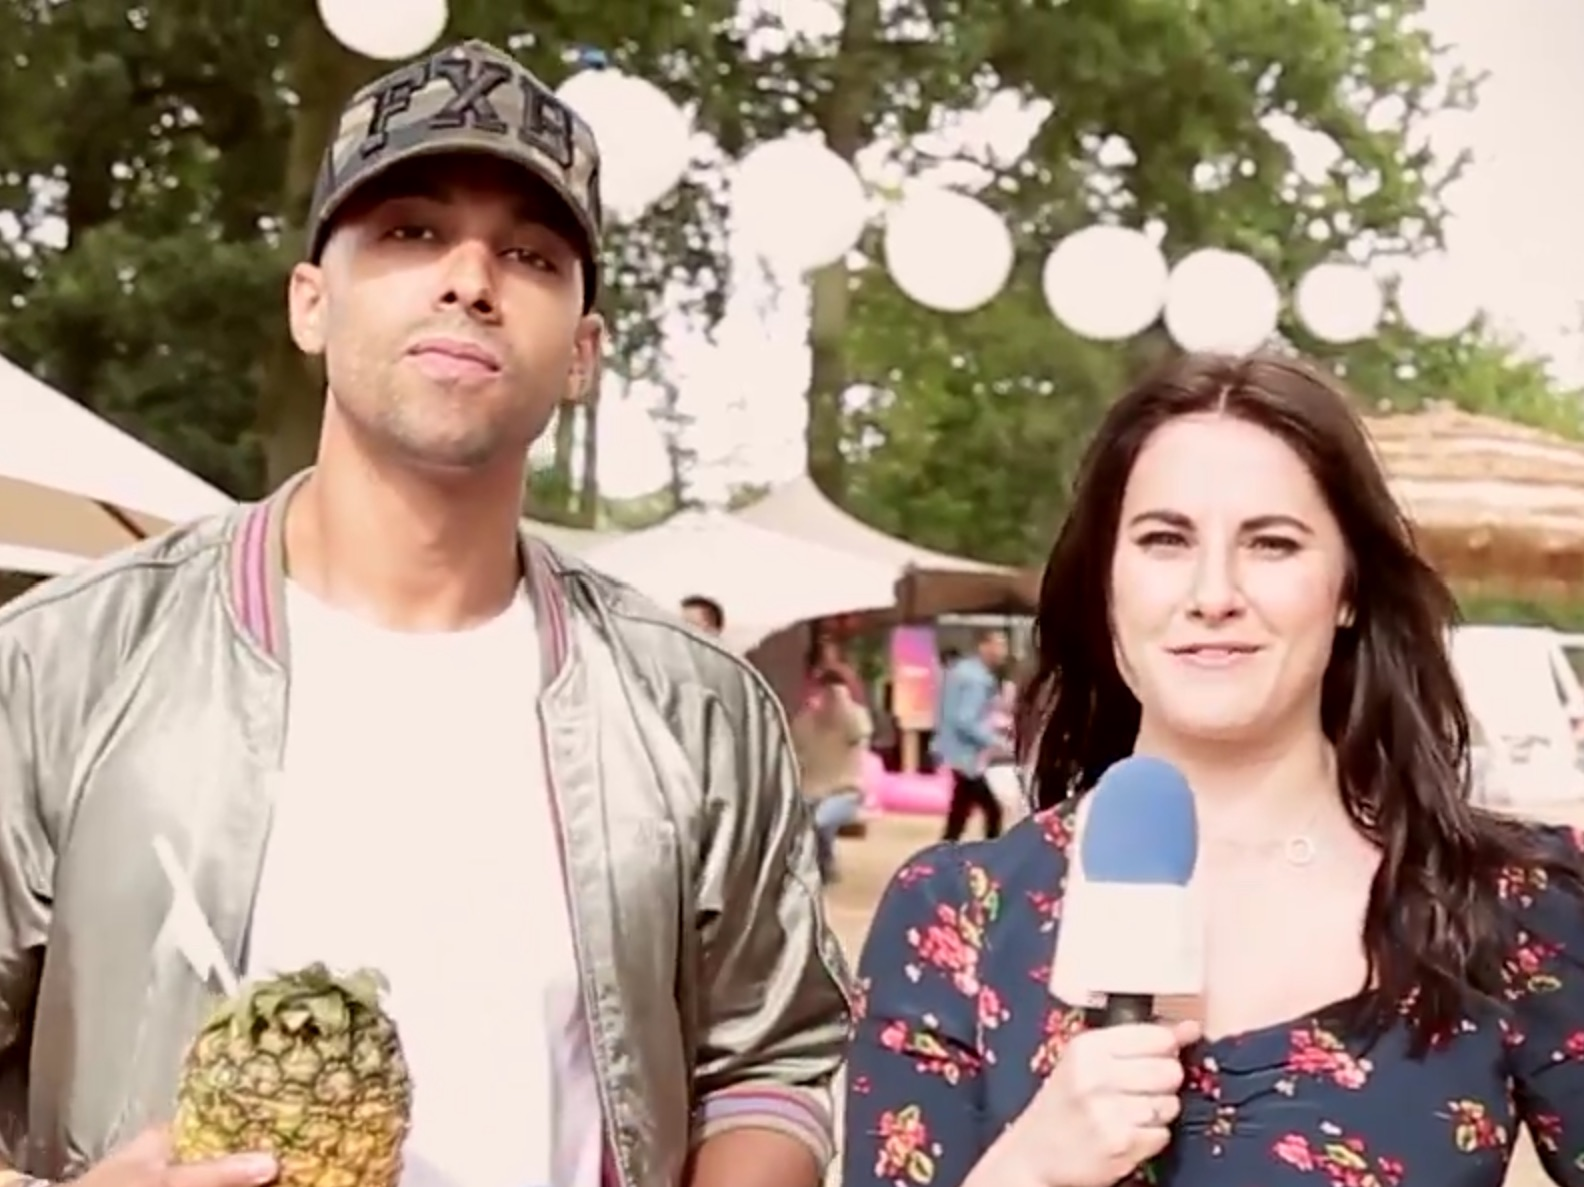 CapitalFM and TV Presenter Marvin Humes wearing the Foxberry Boys FXB Camouflage Trucker at the V Festival